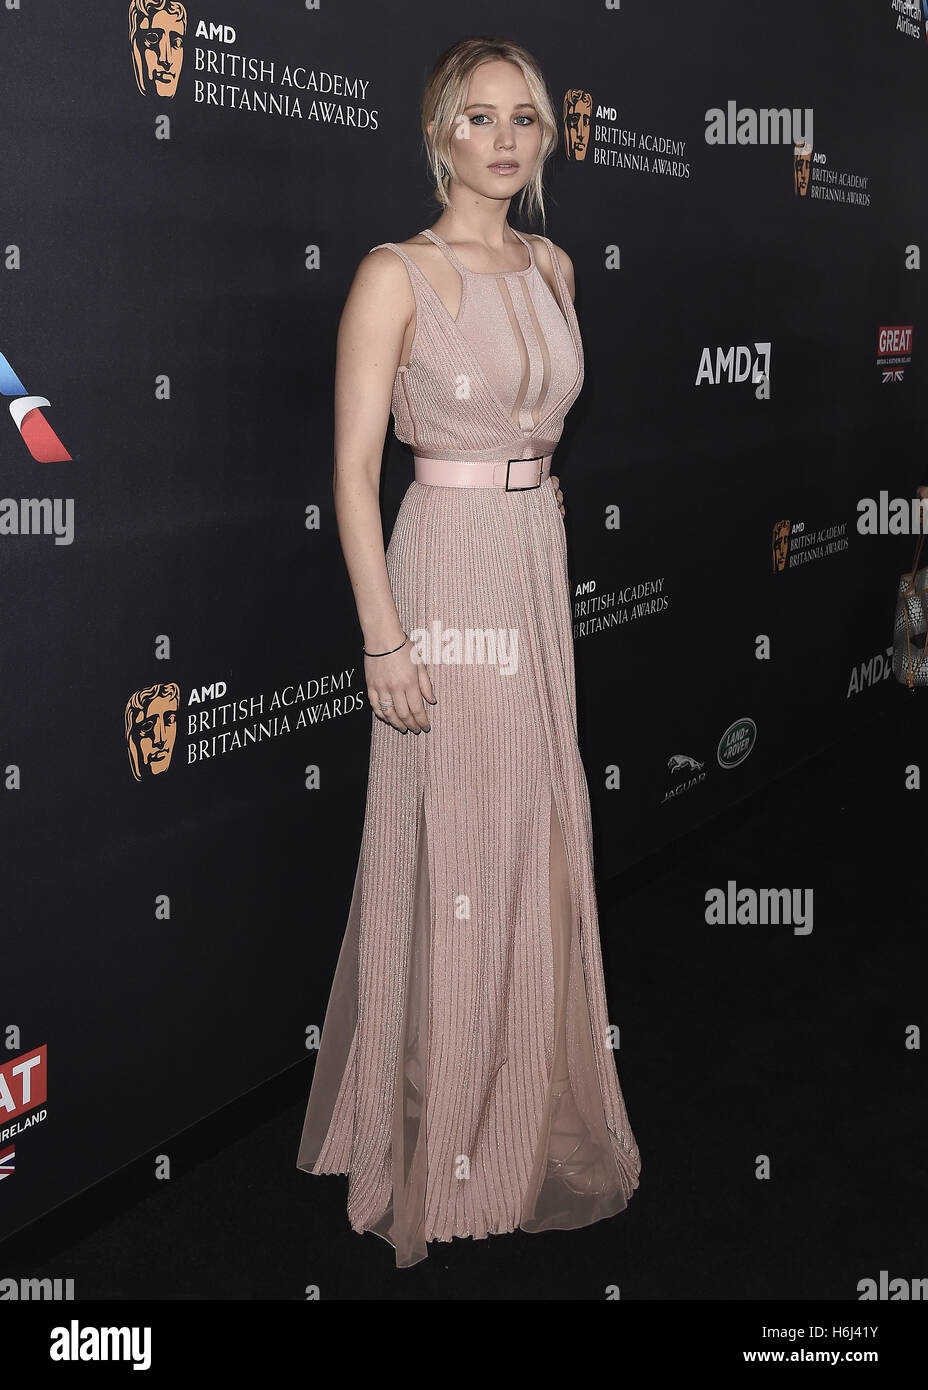 BEVERLY HILLS, CA - OCTOBER 28:  Jennifer Lawrence at the 2016 BAFTA Los Angeles Britannia Awards at the Beverly - Stock Image